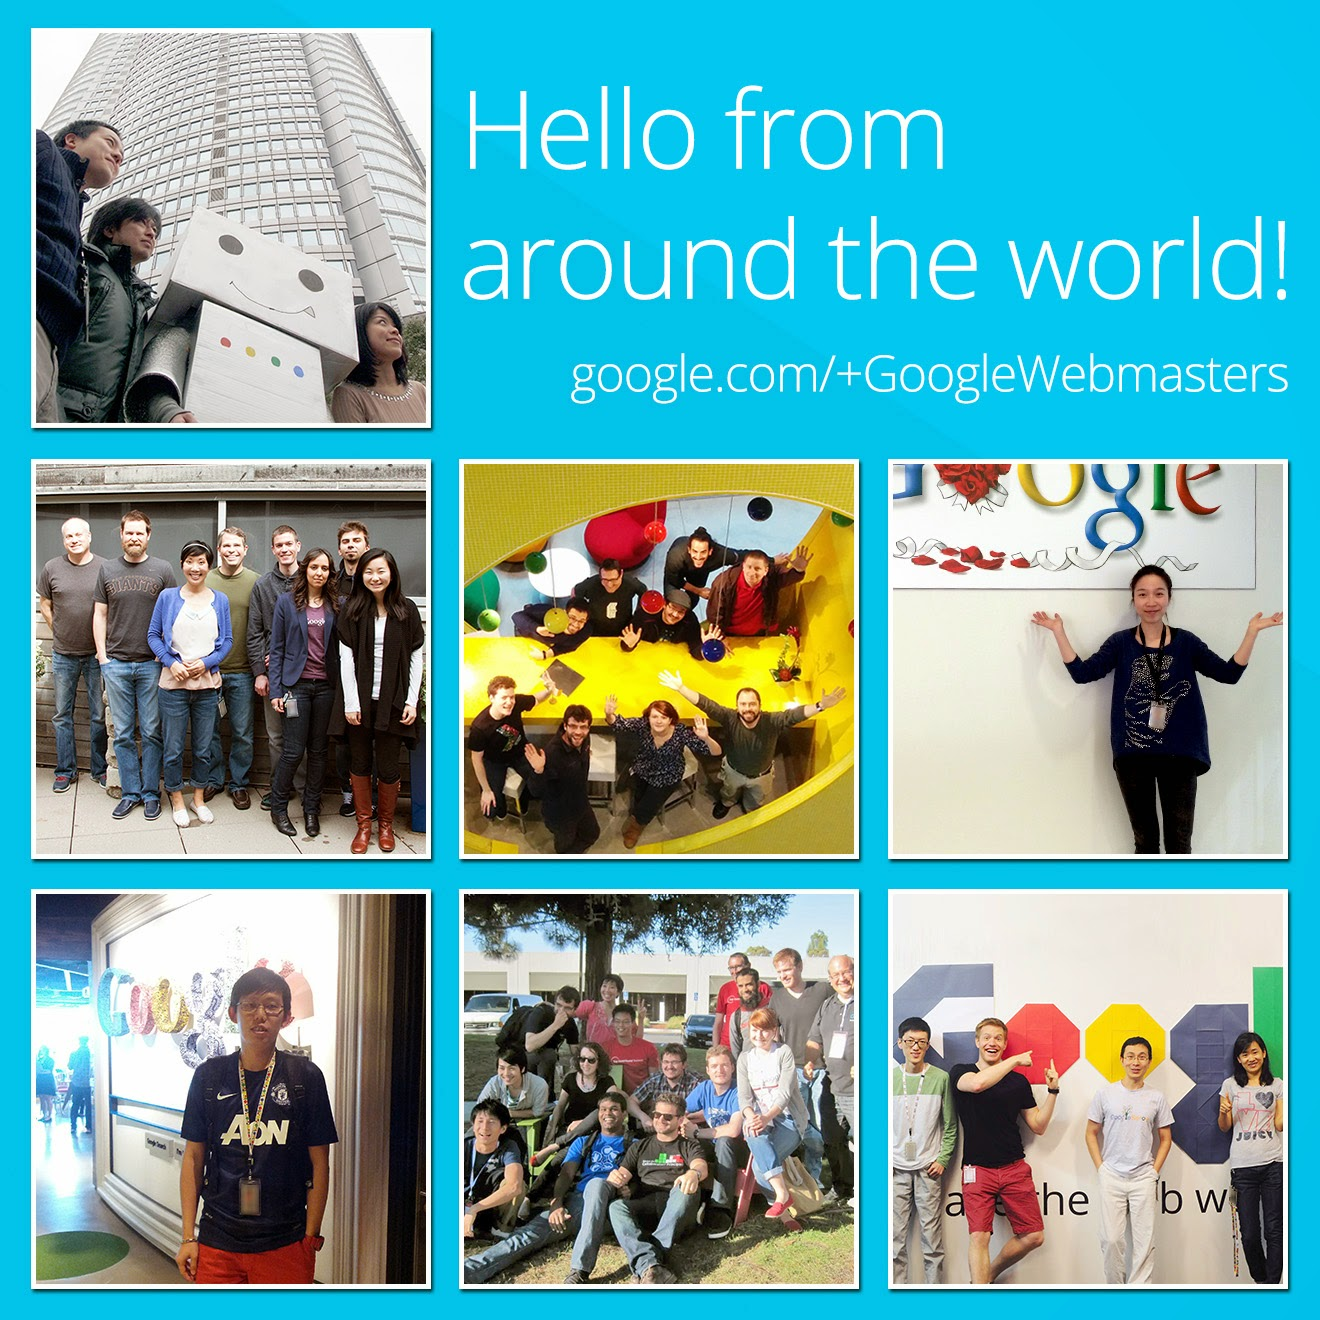 Google Webmasters from around the world